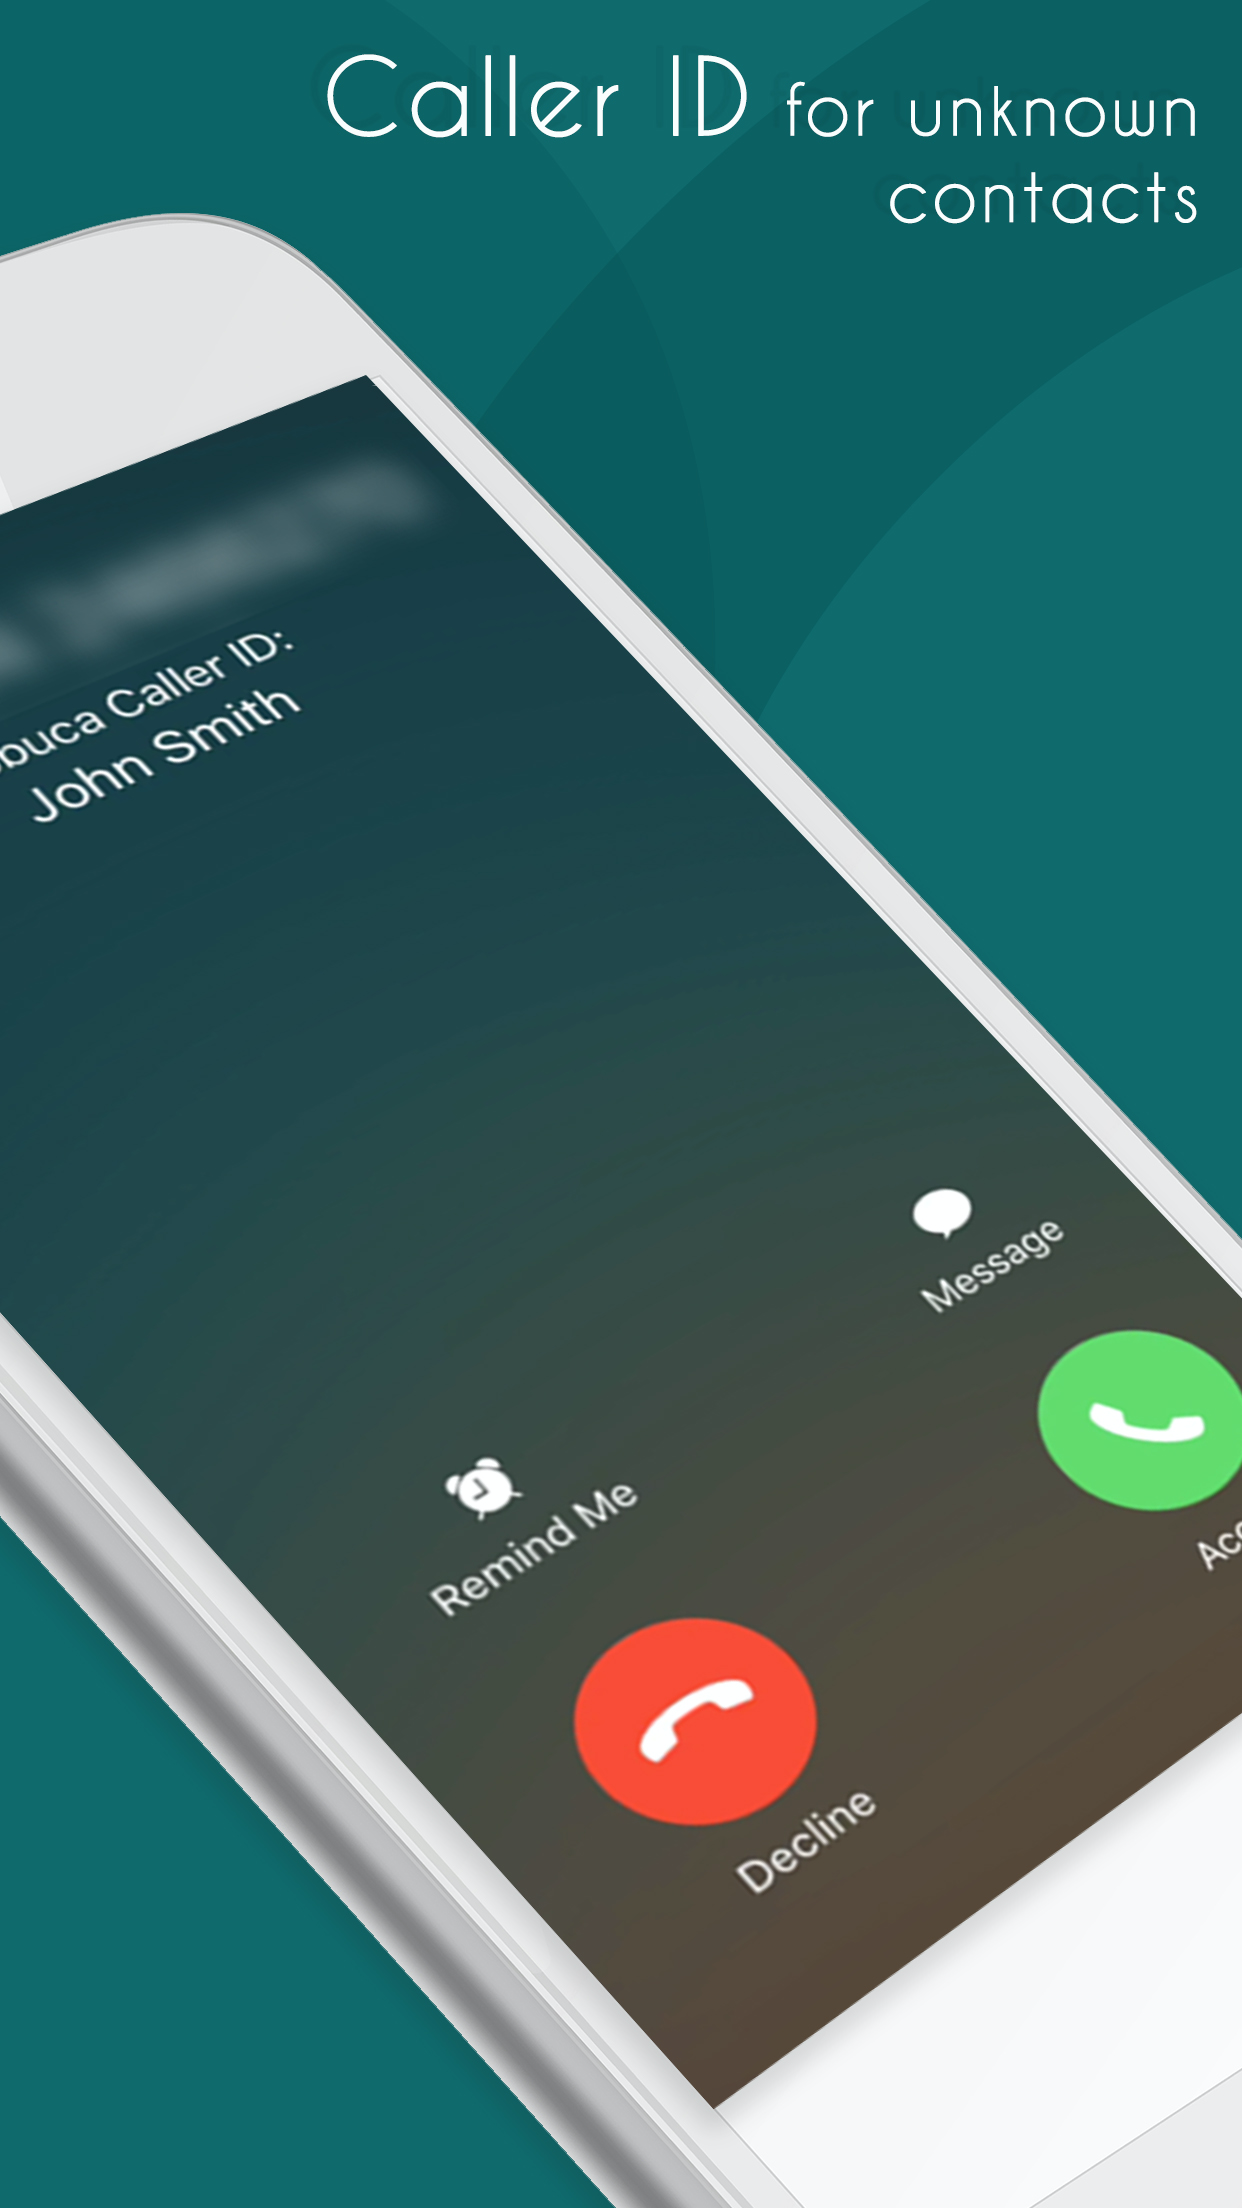 Pobuca Connect - Caller ID for unknown contacts